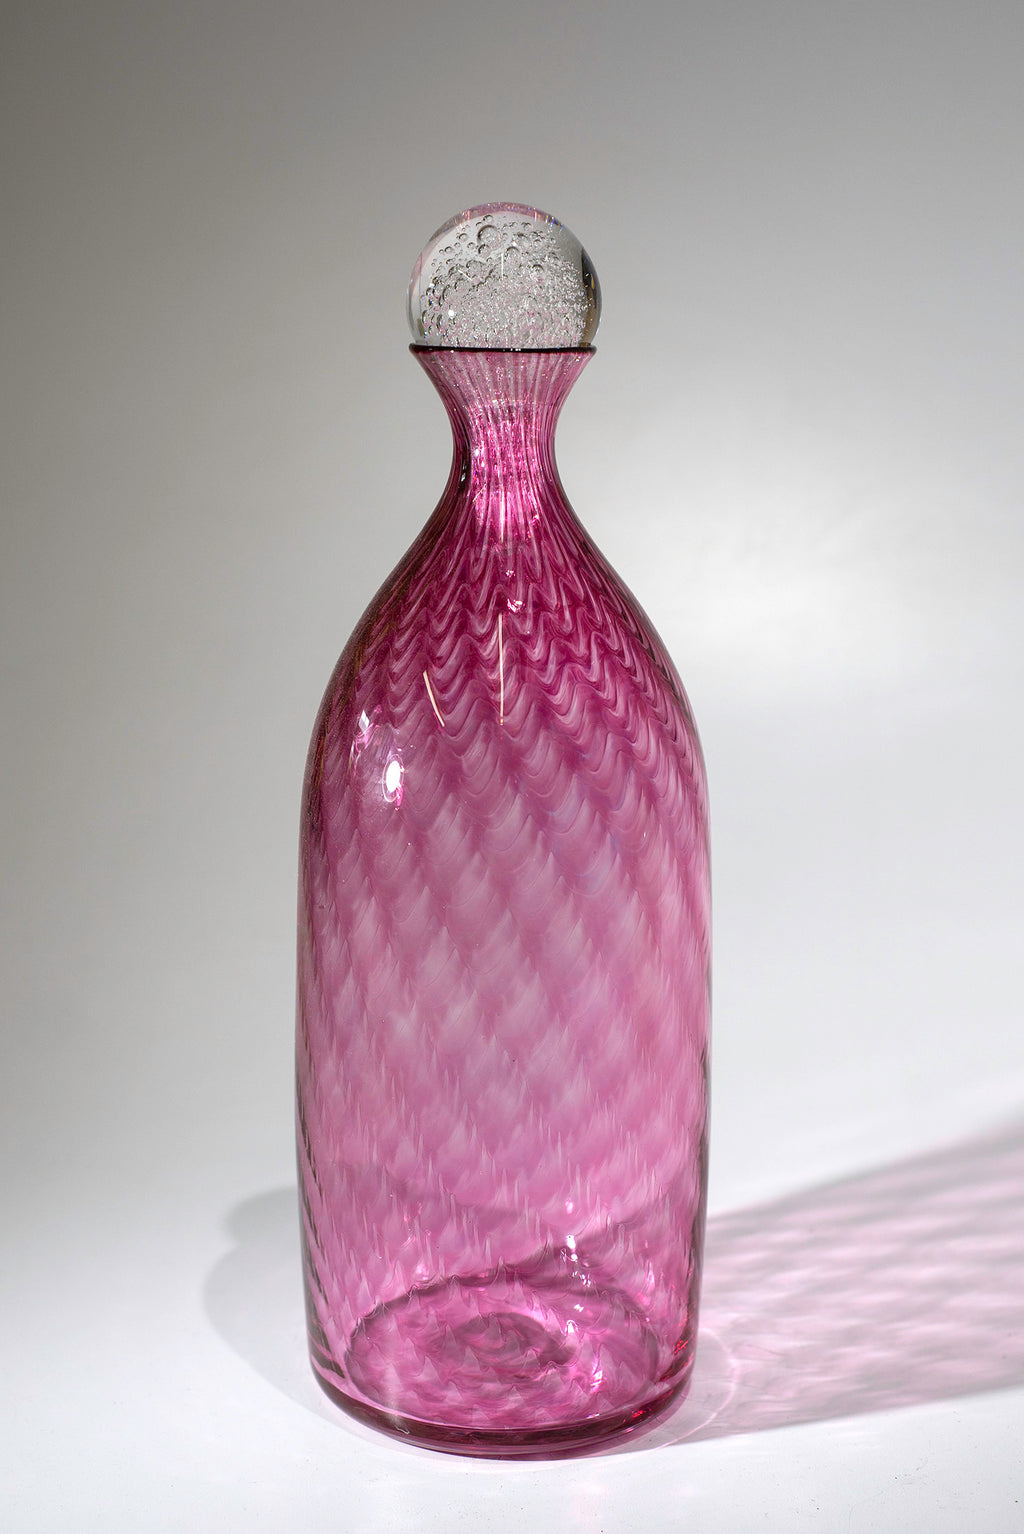 Woven Bottle with Stopper - #200621-8